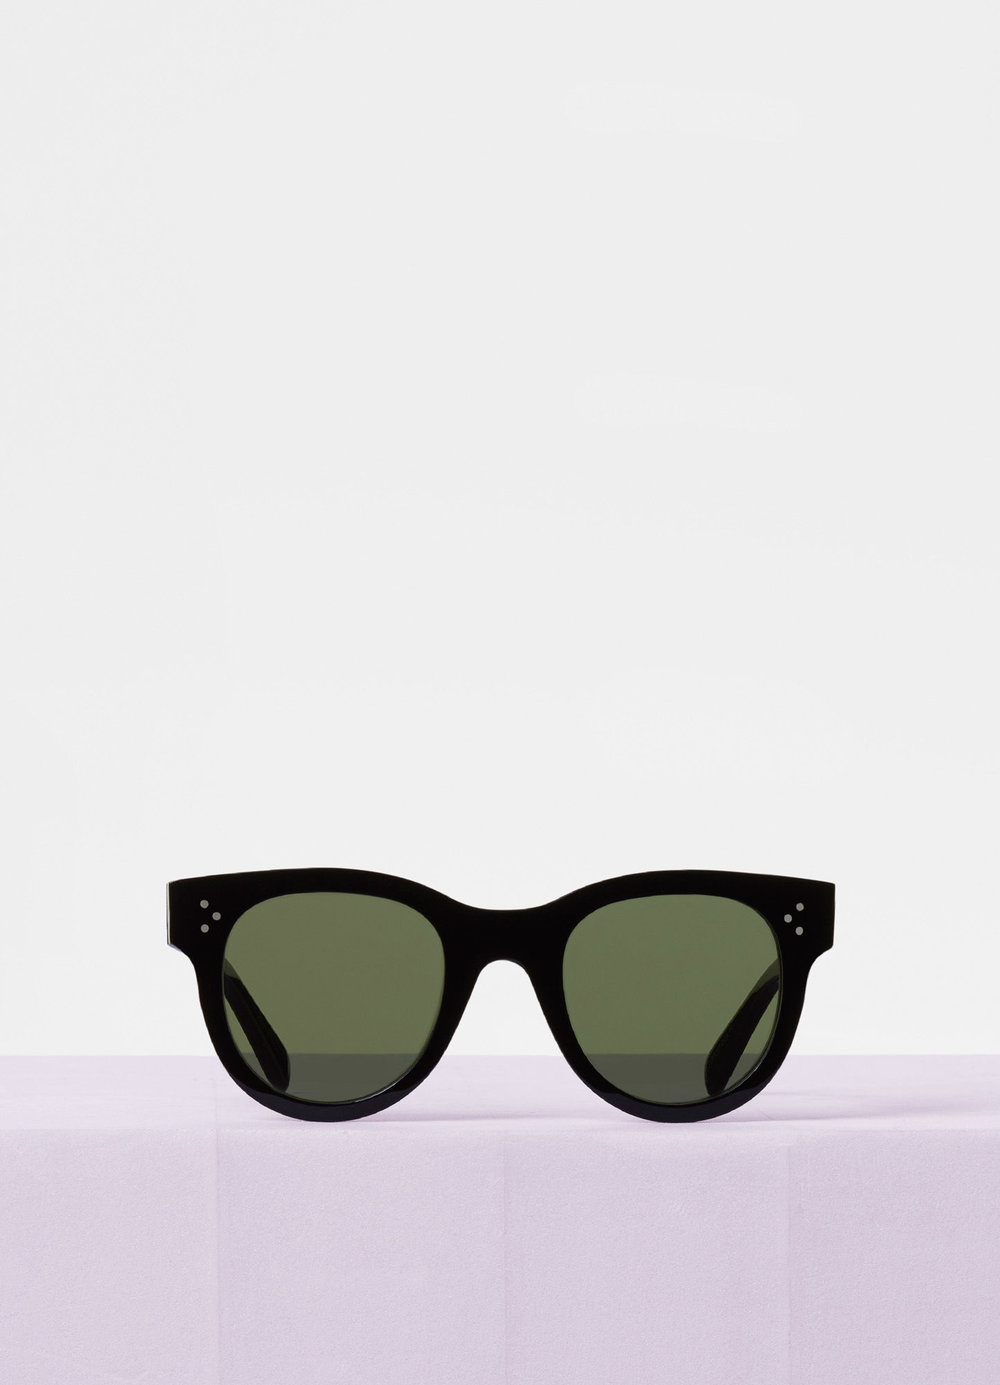 CELINE- CL40003I Sunglasses   £290 (Sold out)   COLOUR  Black/Gradient smoke lens   CATEGORY  SUN   MATERIAL  Acetate frame with mineral glass lenses   SHAPE  Cat Eye